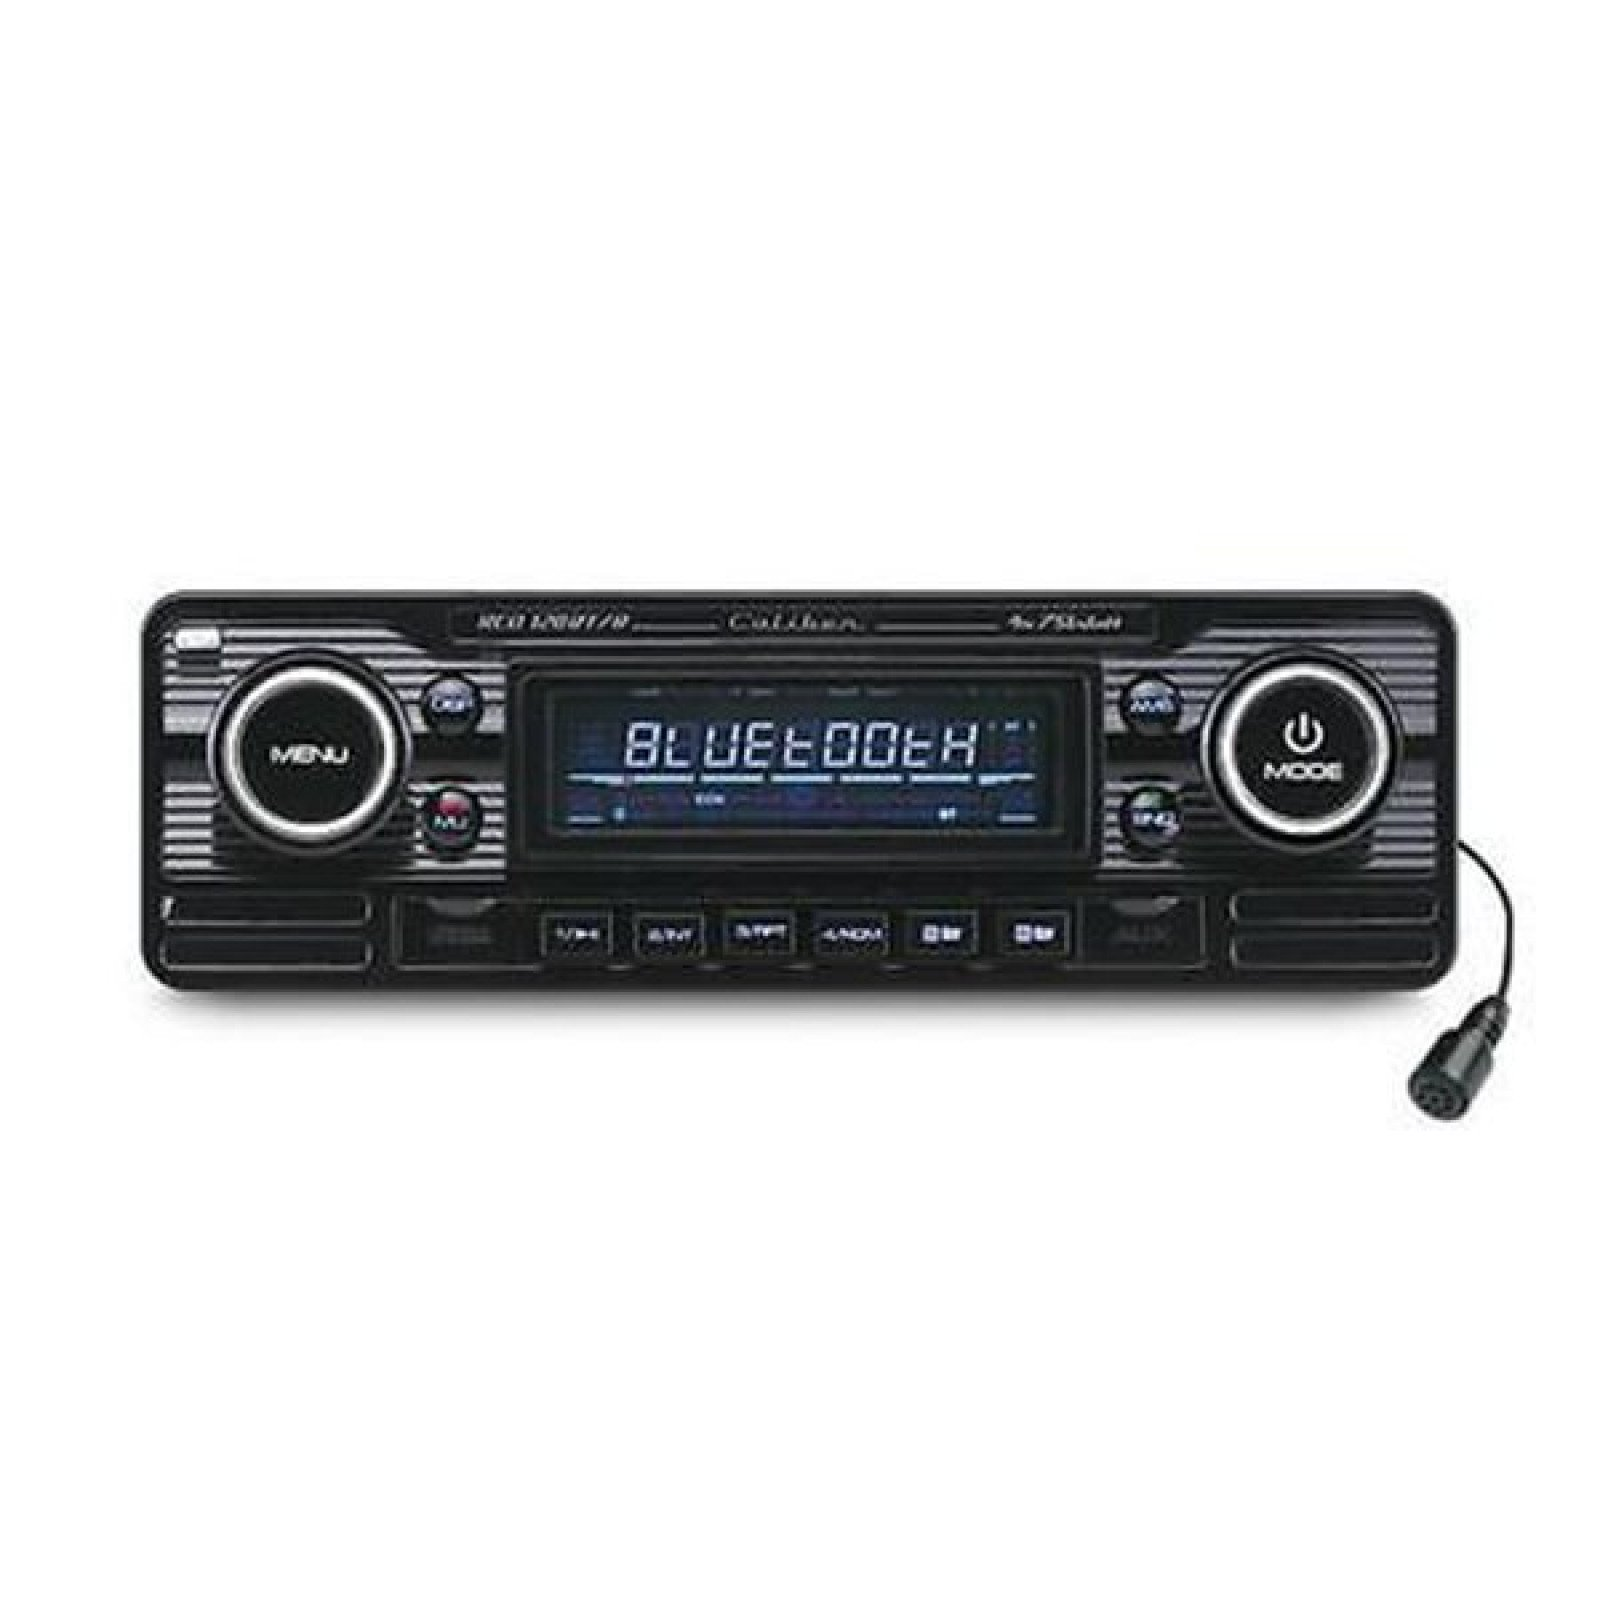 caliber cd120bt classic retro style single din radio cd mp3 usb player stereo head unit black. Black Bedroom Furniture Sets. Home Design Ideas